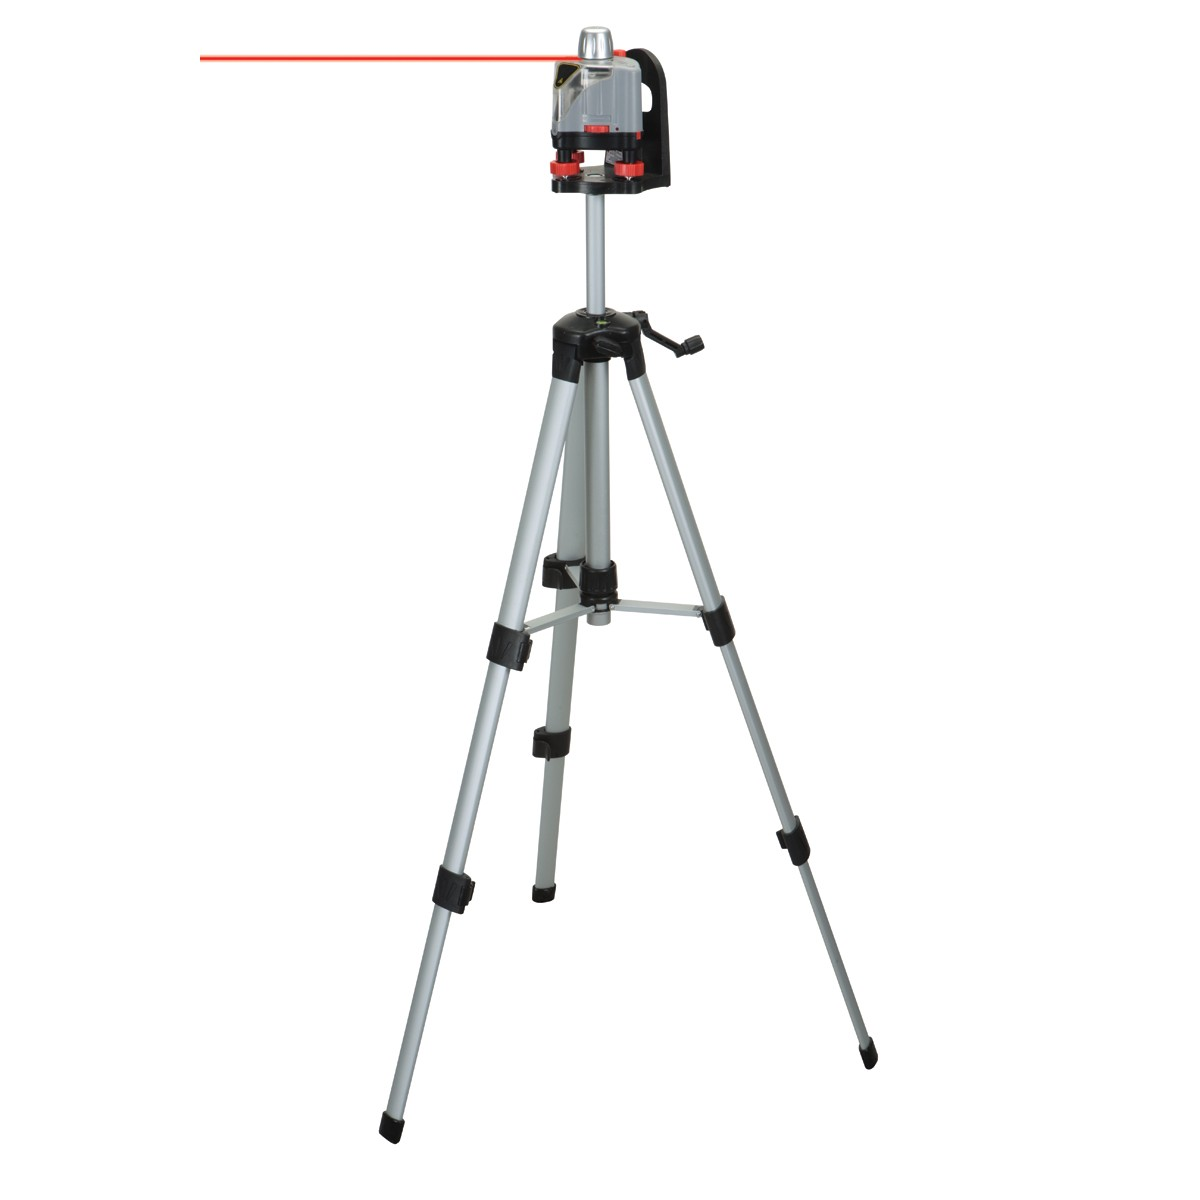 Motorized Rotary Laser Level Kit